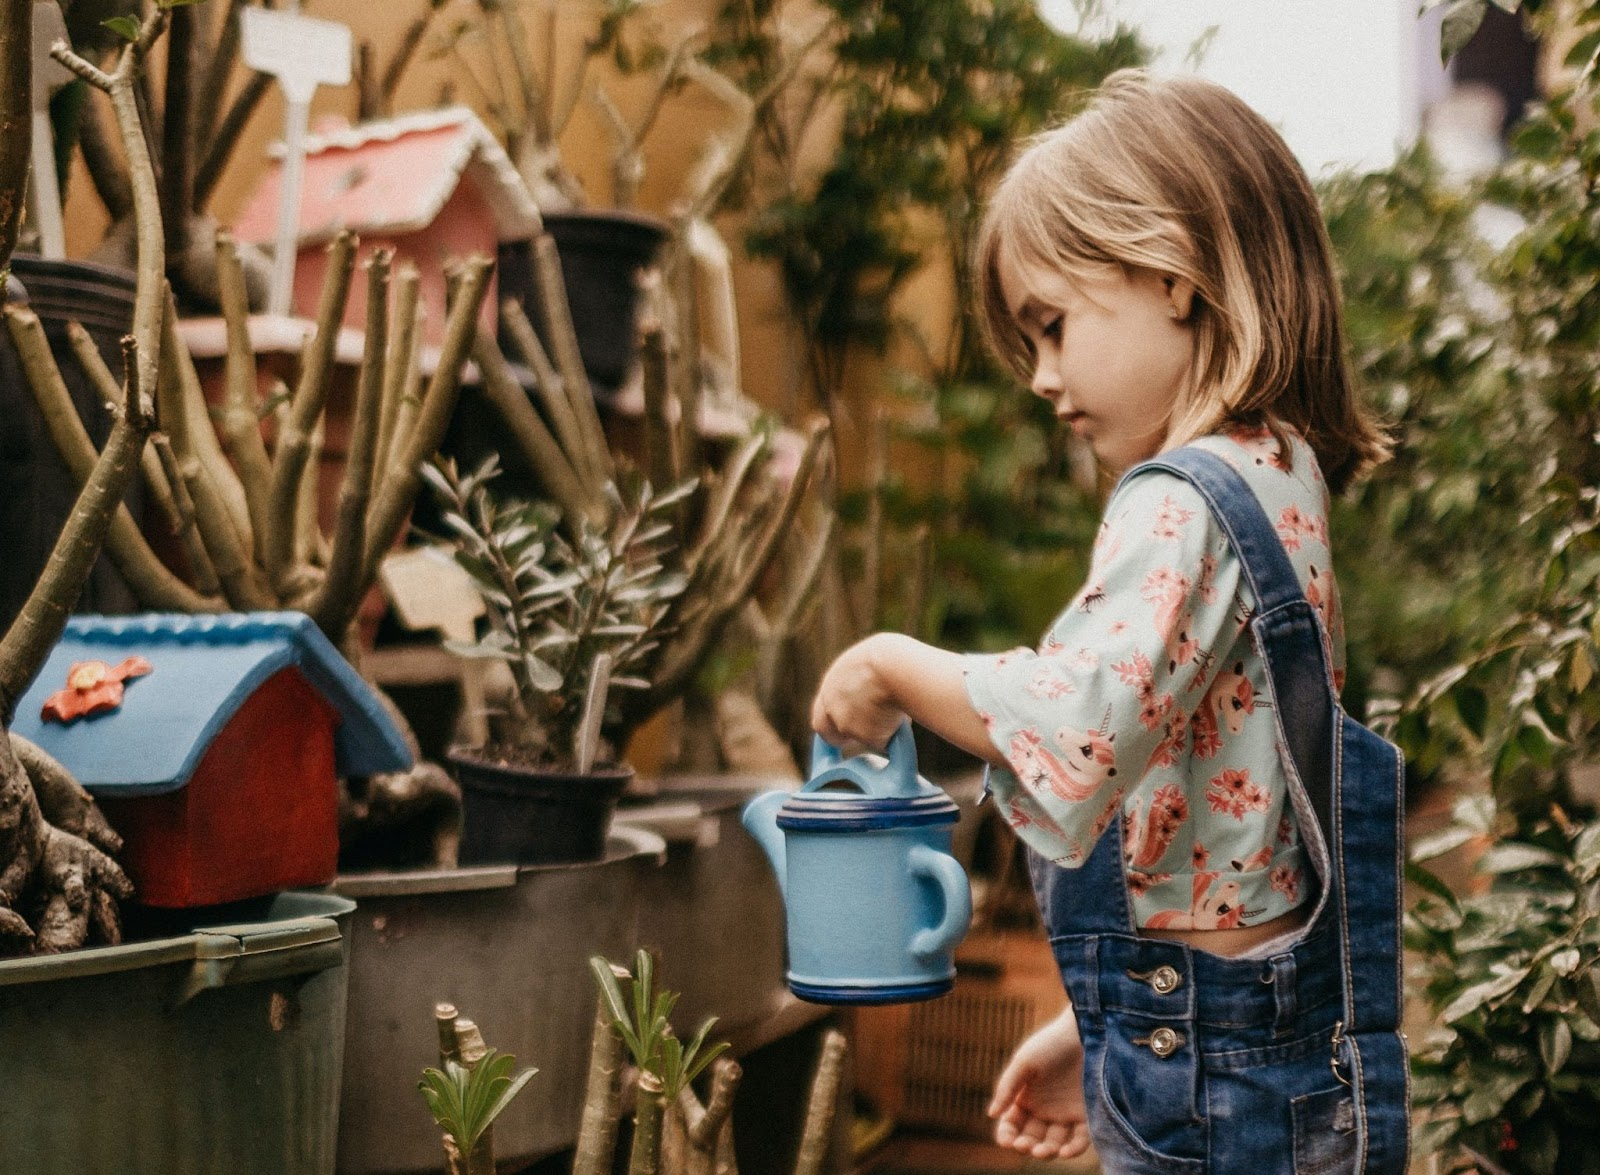 a child learns about financial values by performing chores